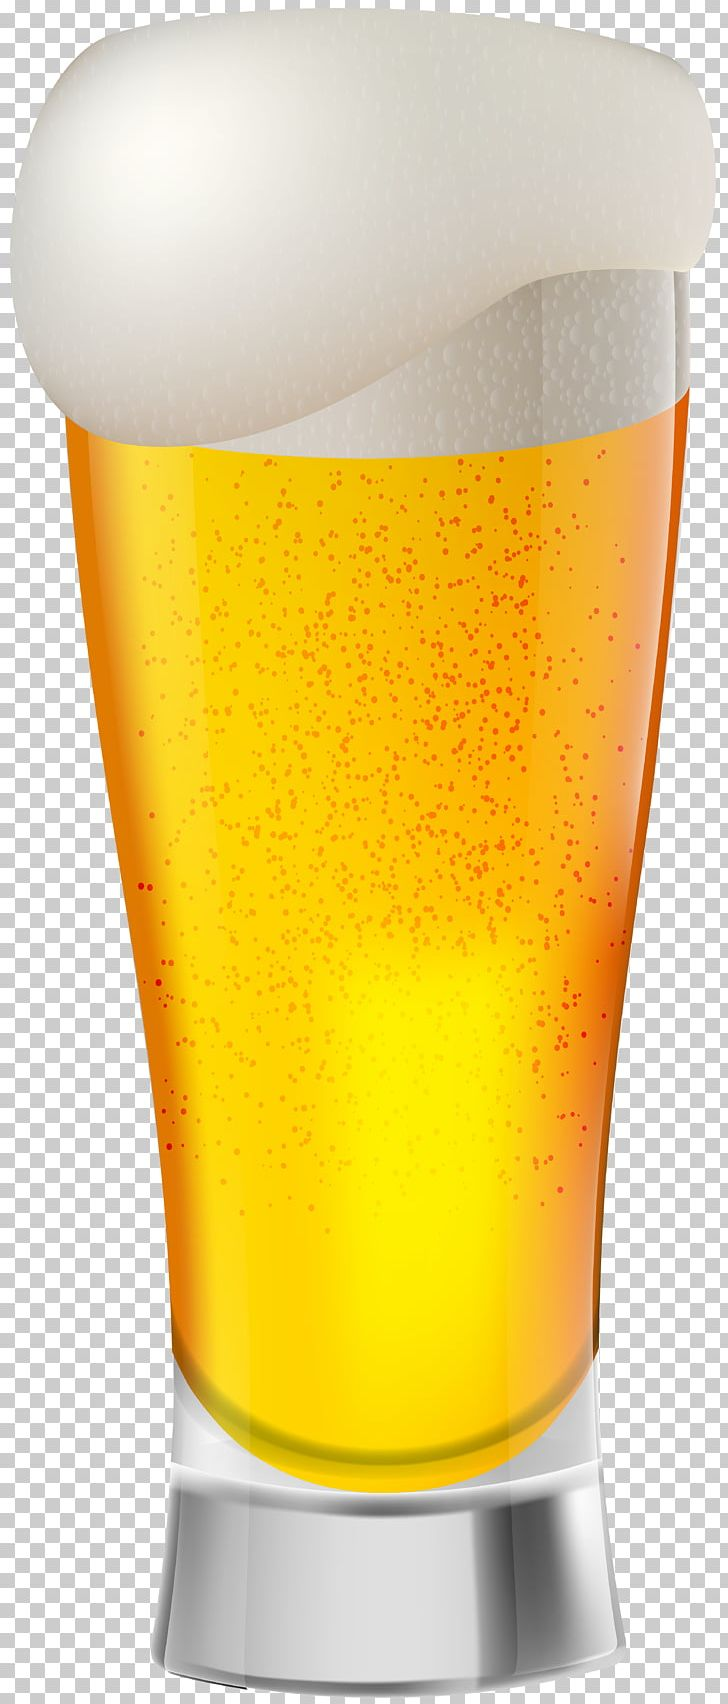 Beer Pint Glass Orange Drink United States Of America PNG.